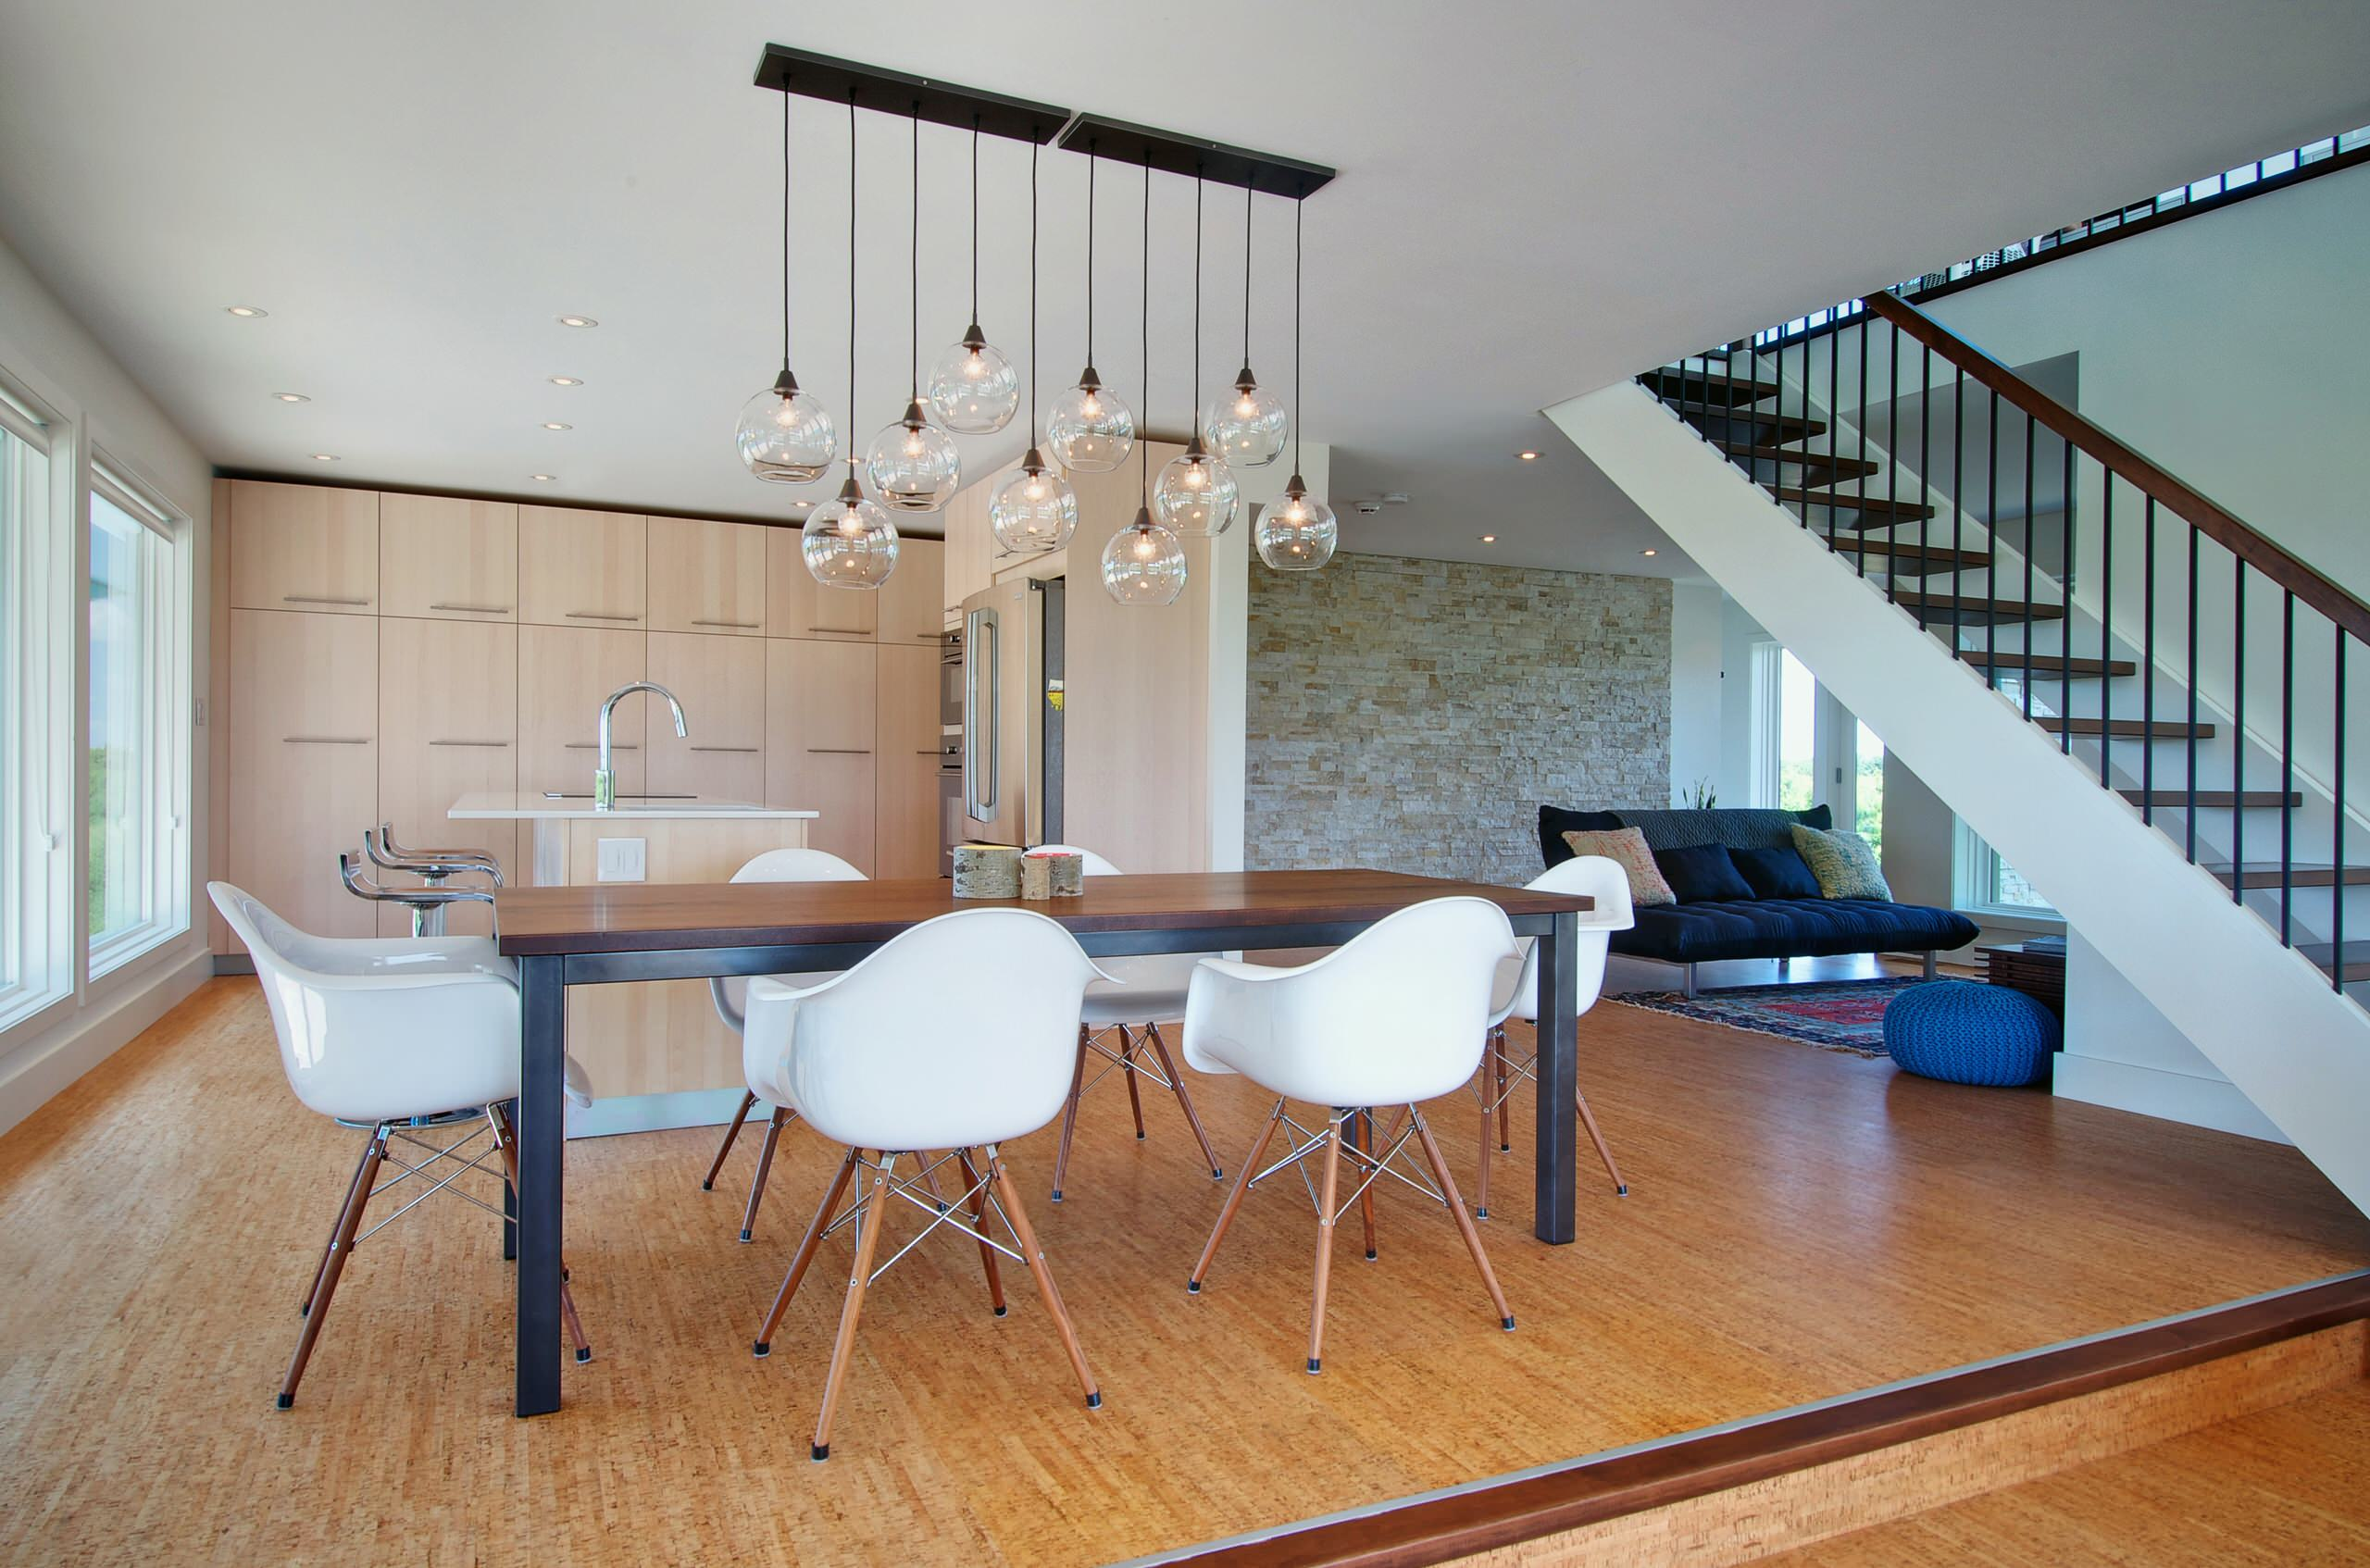 Andrew Snow Photography / Houzz